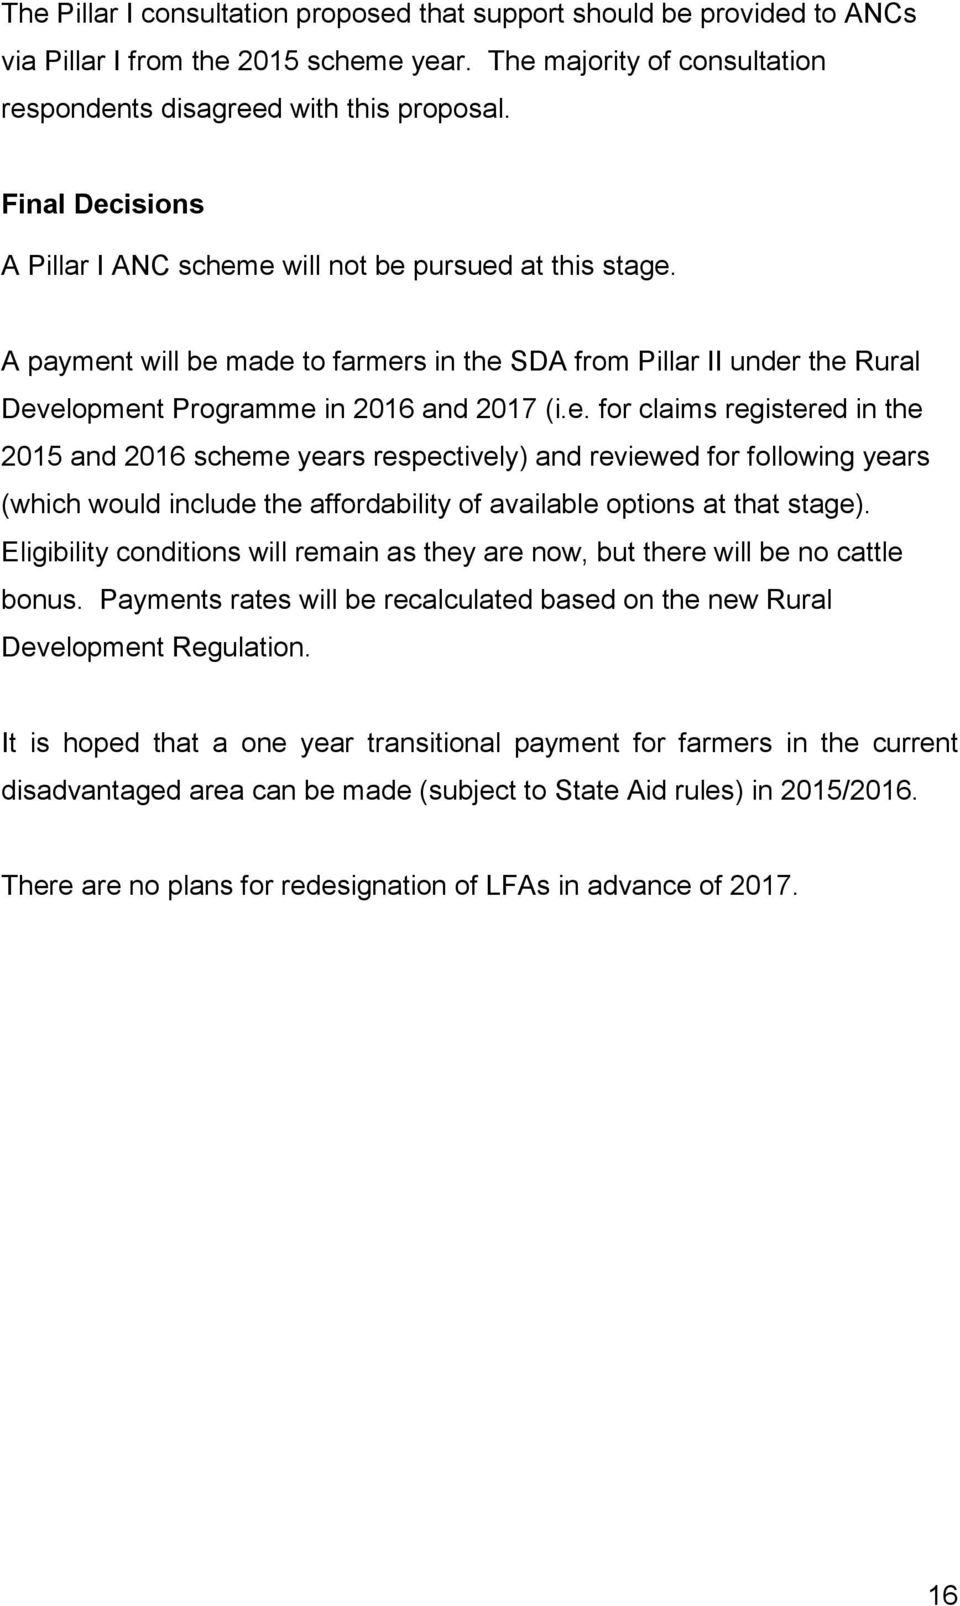 Eligibility conditions will remain as they are now, but there will be no cattle bonus. Payments rates will be recalculated based on the new Rural Development Regulation.